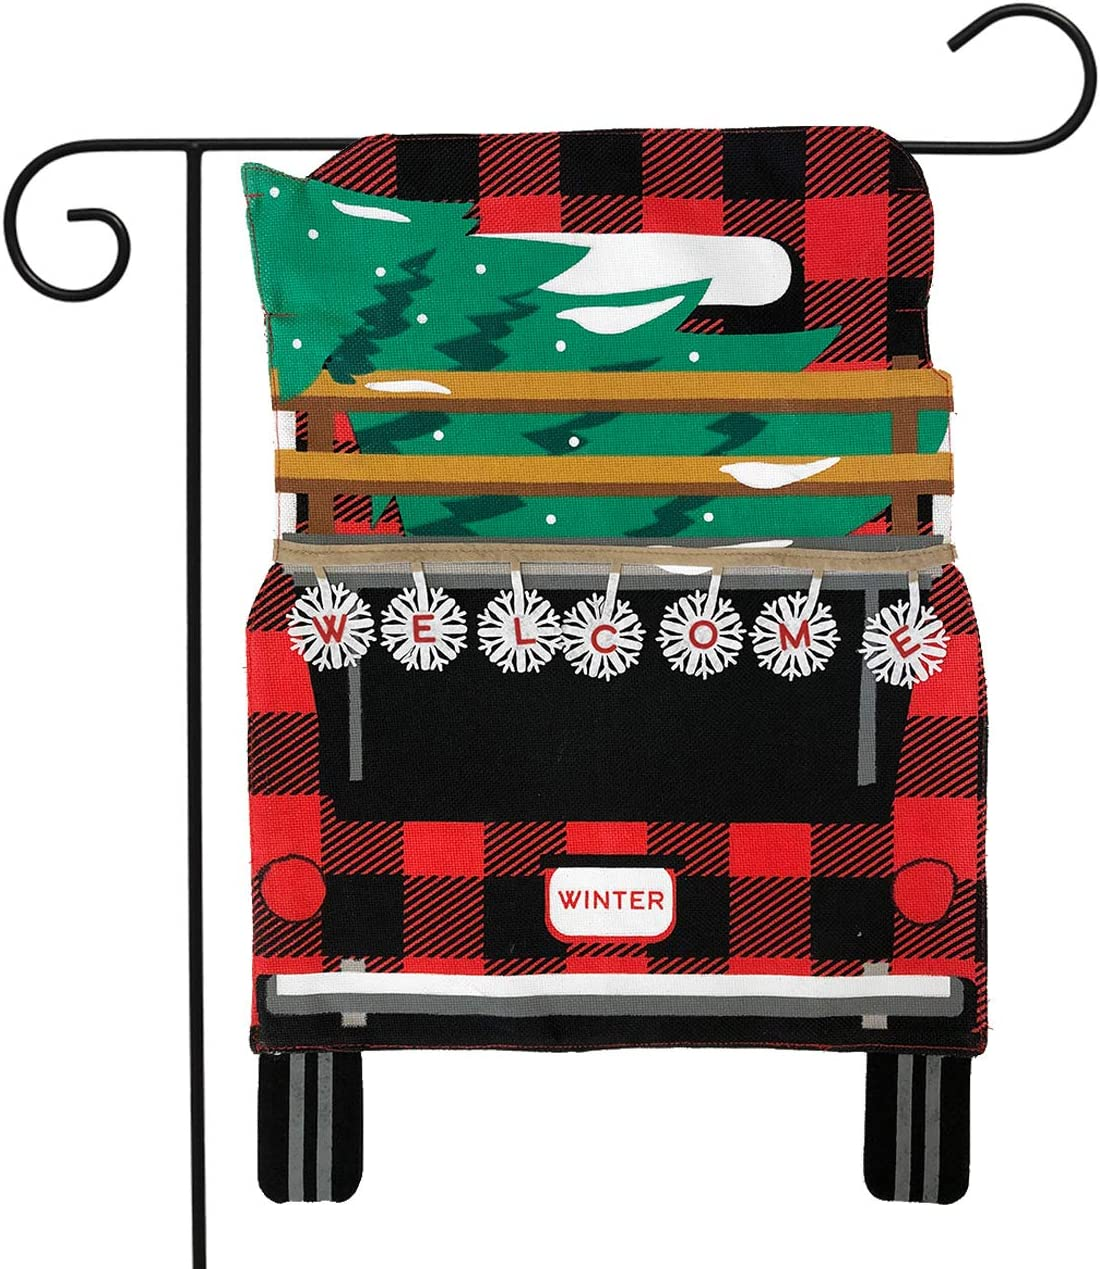 "Briarwood Lane Red Checkered Truck Christmas Burlap Garden Flag Holiday Tree 12.5"" x 18"""